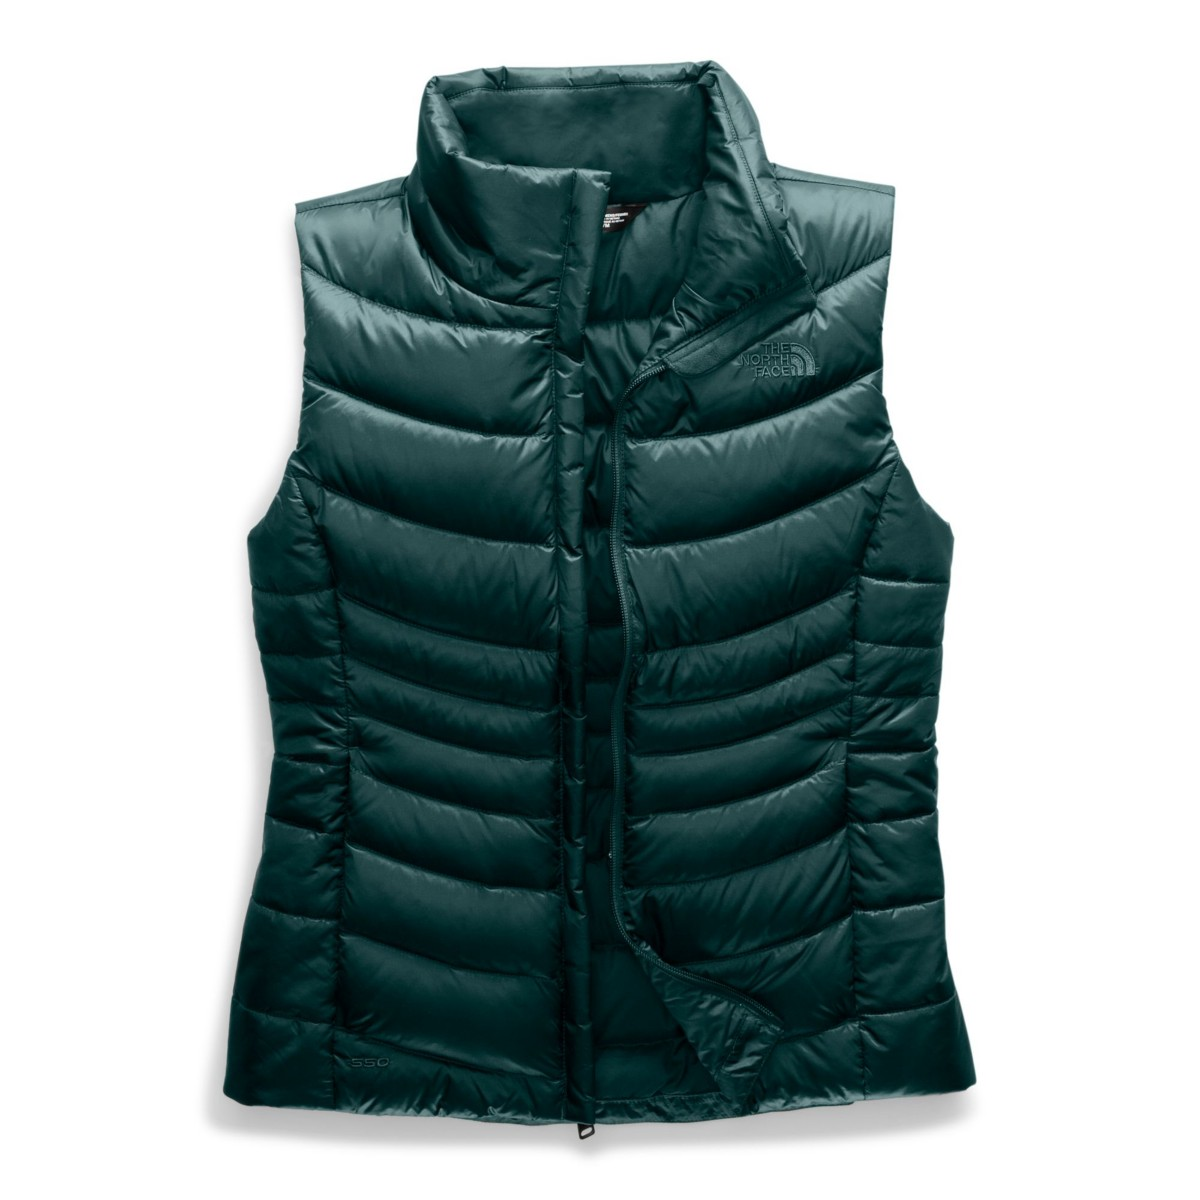 e9b4617c8 Women's The North Face Aconcagua Vest II | SCHEELS.com